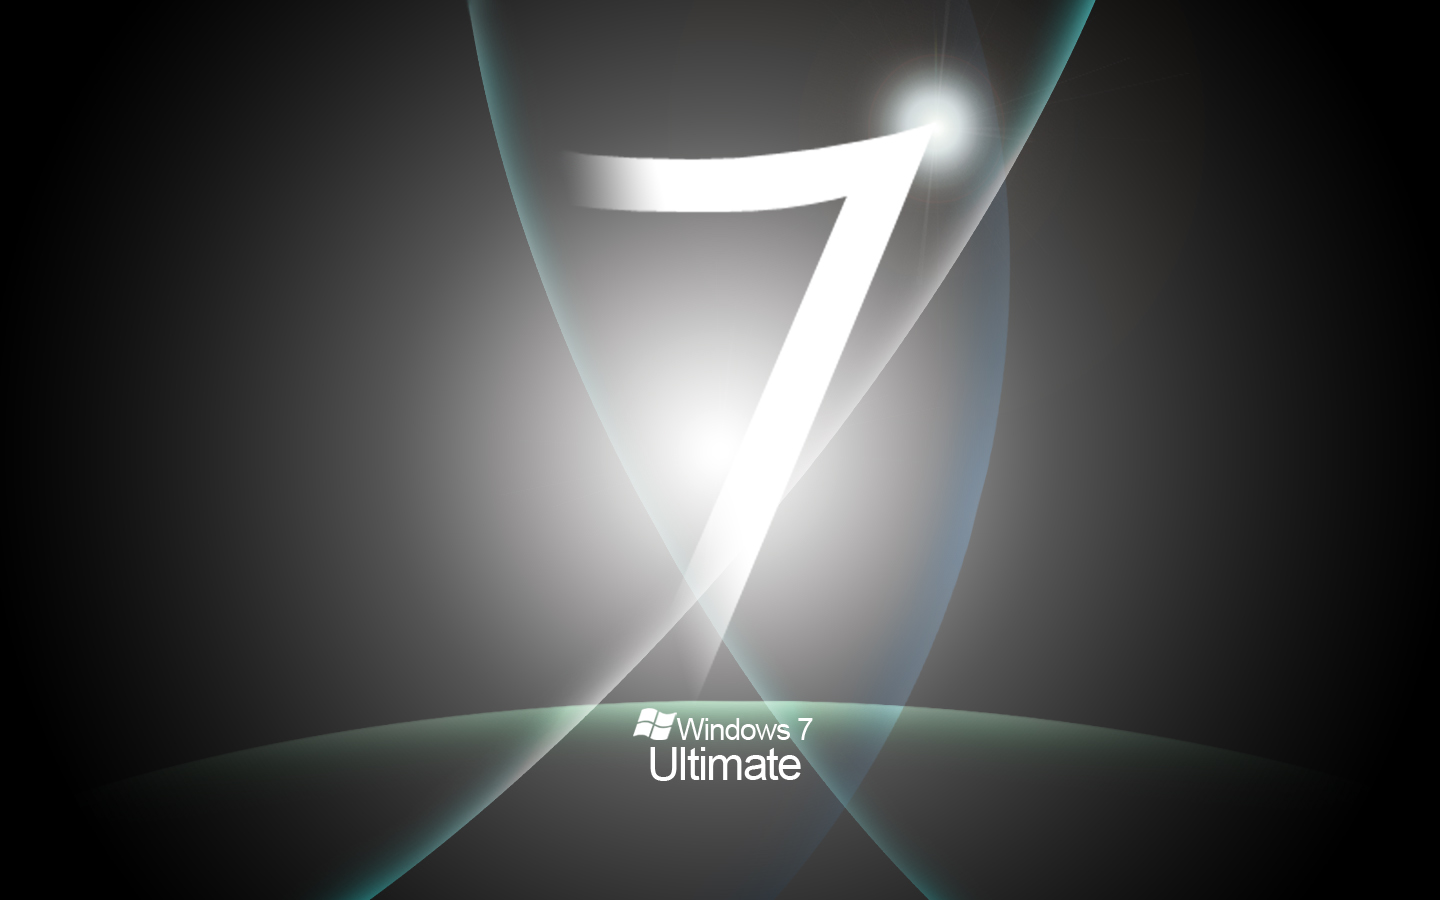 Cw windows 7 ultimate for Window 7 ultimate